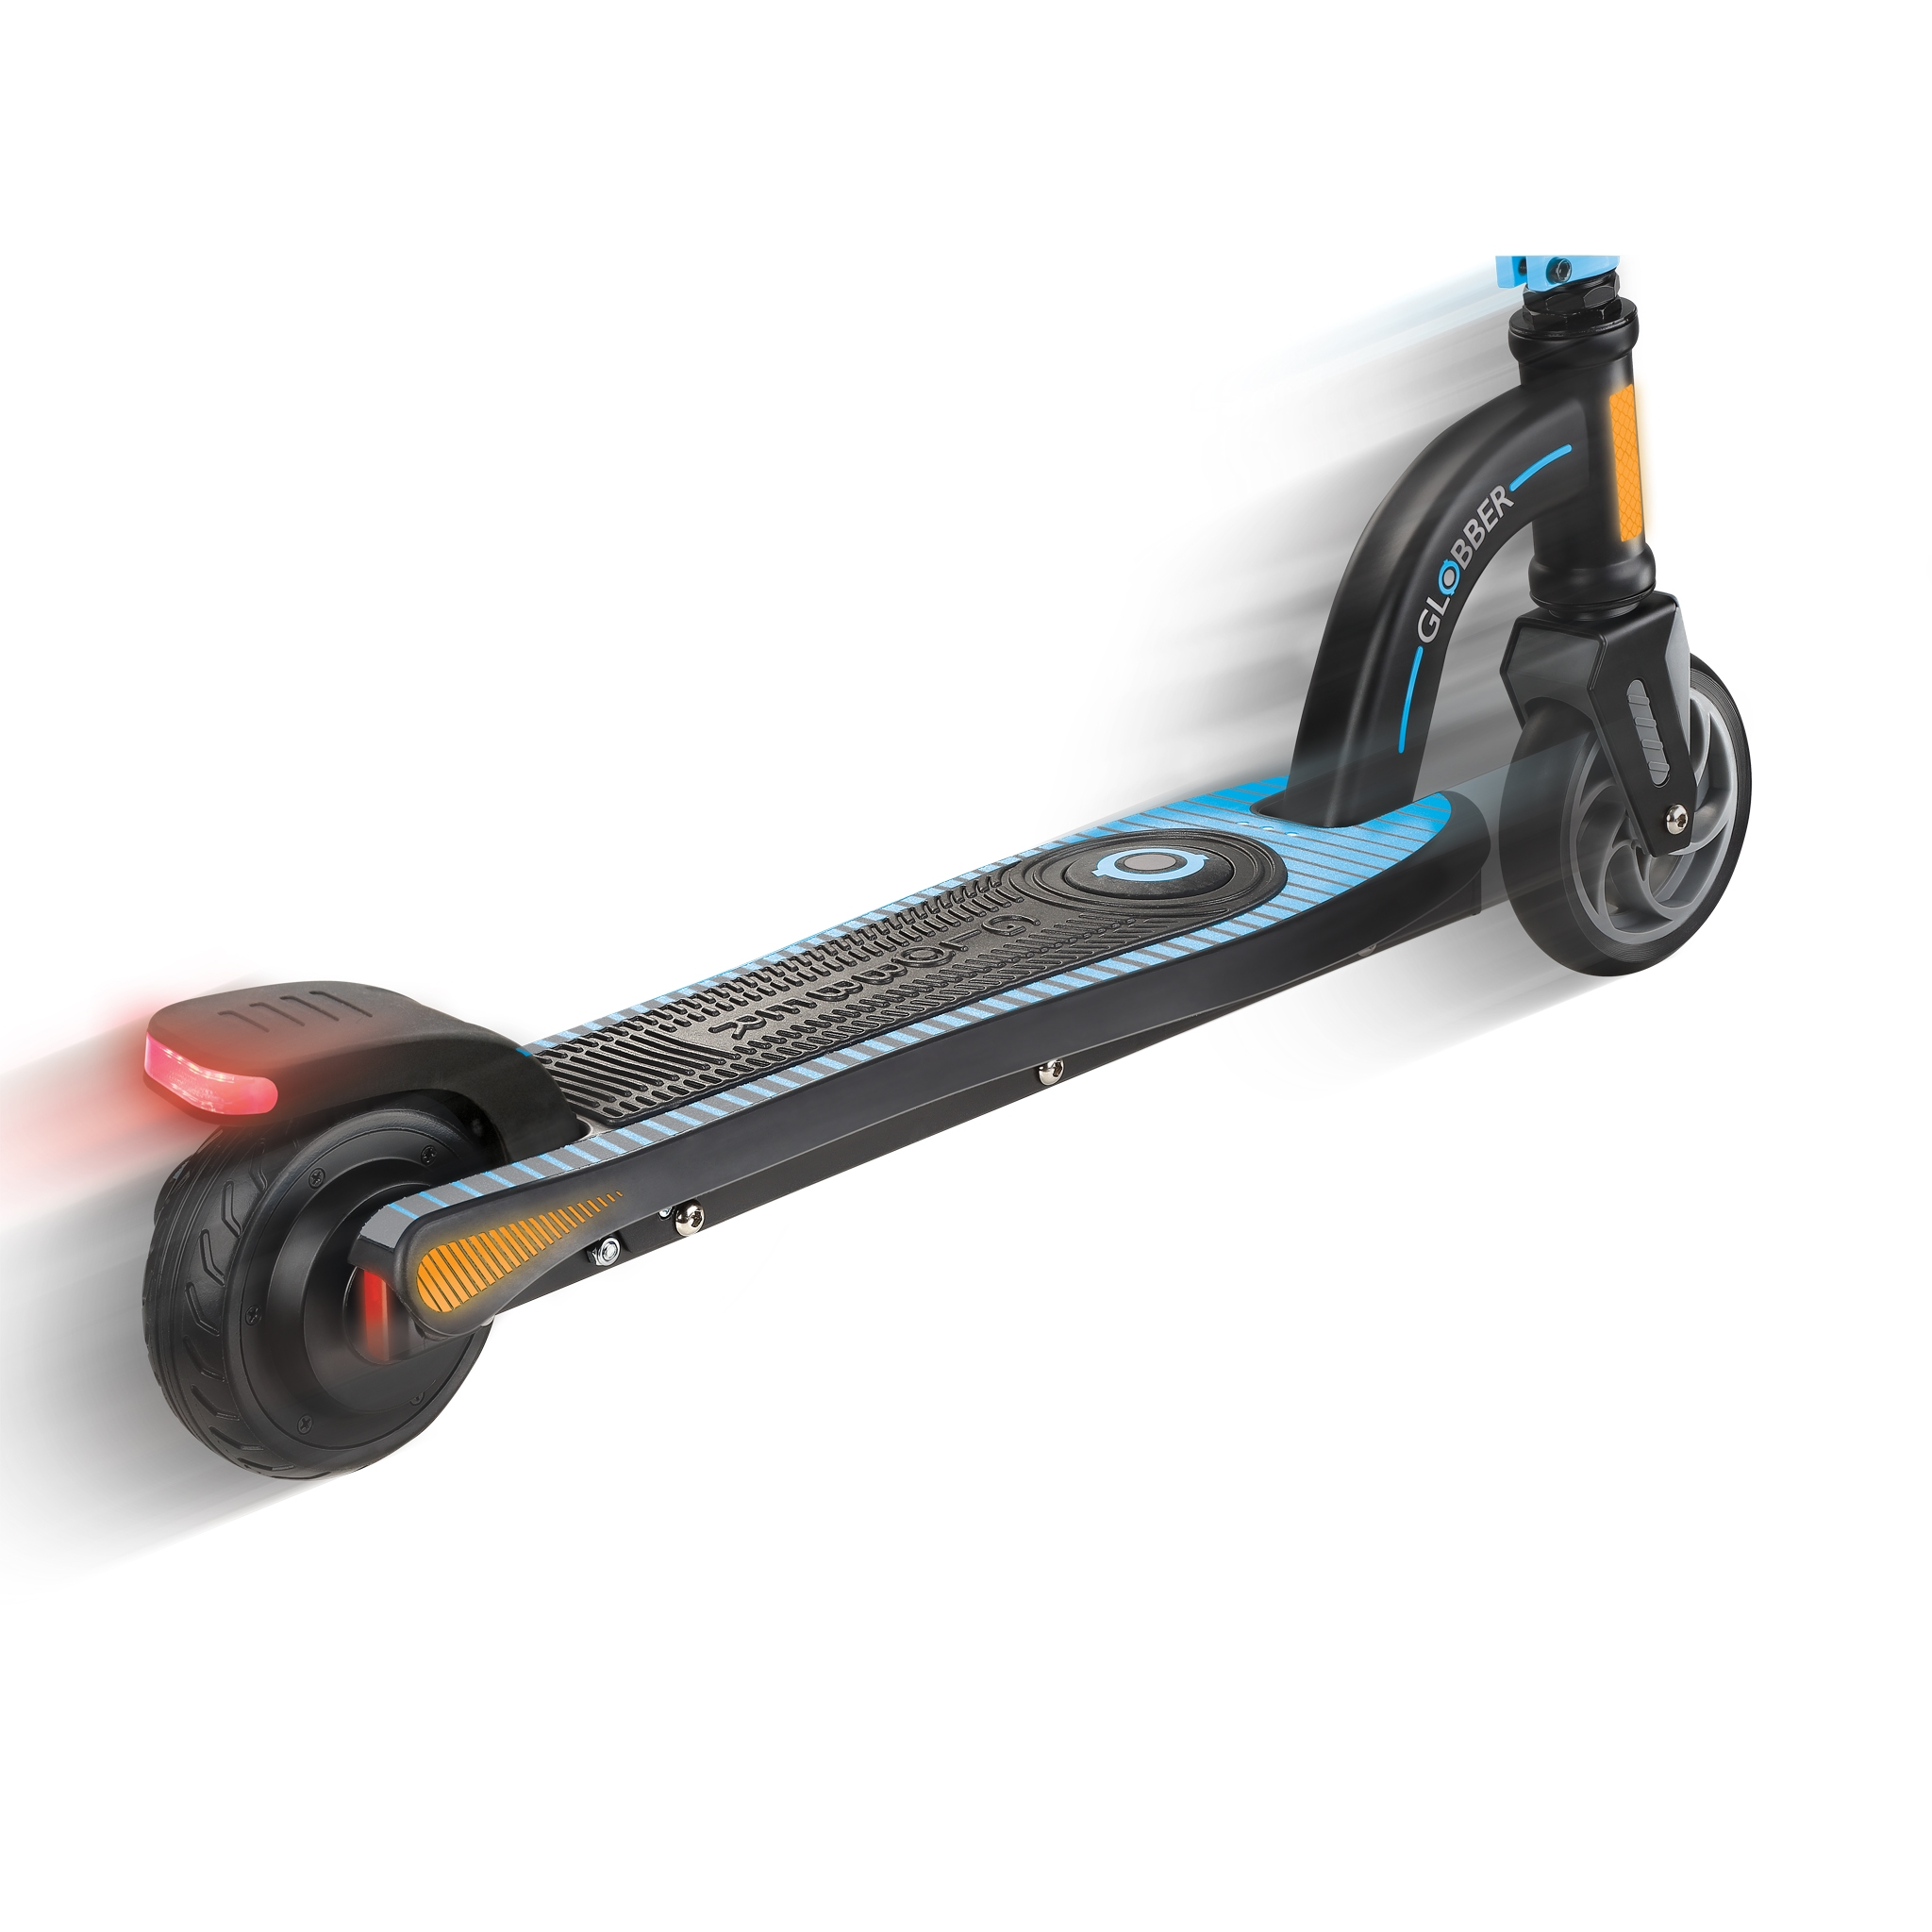 Globber-ONE-K-E-MOTION-10-electric-scooter-for-kids-aluminium-scooter-deck-with-accelerator-pressure-sensor 2